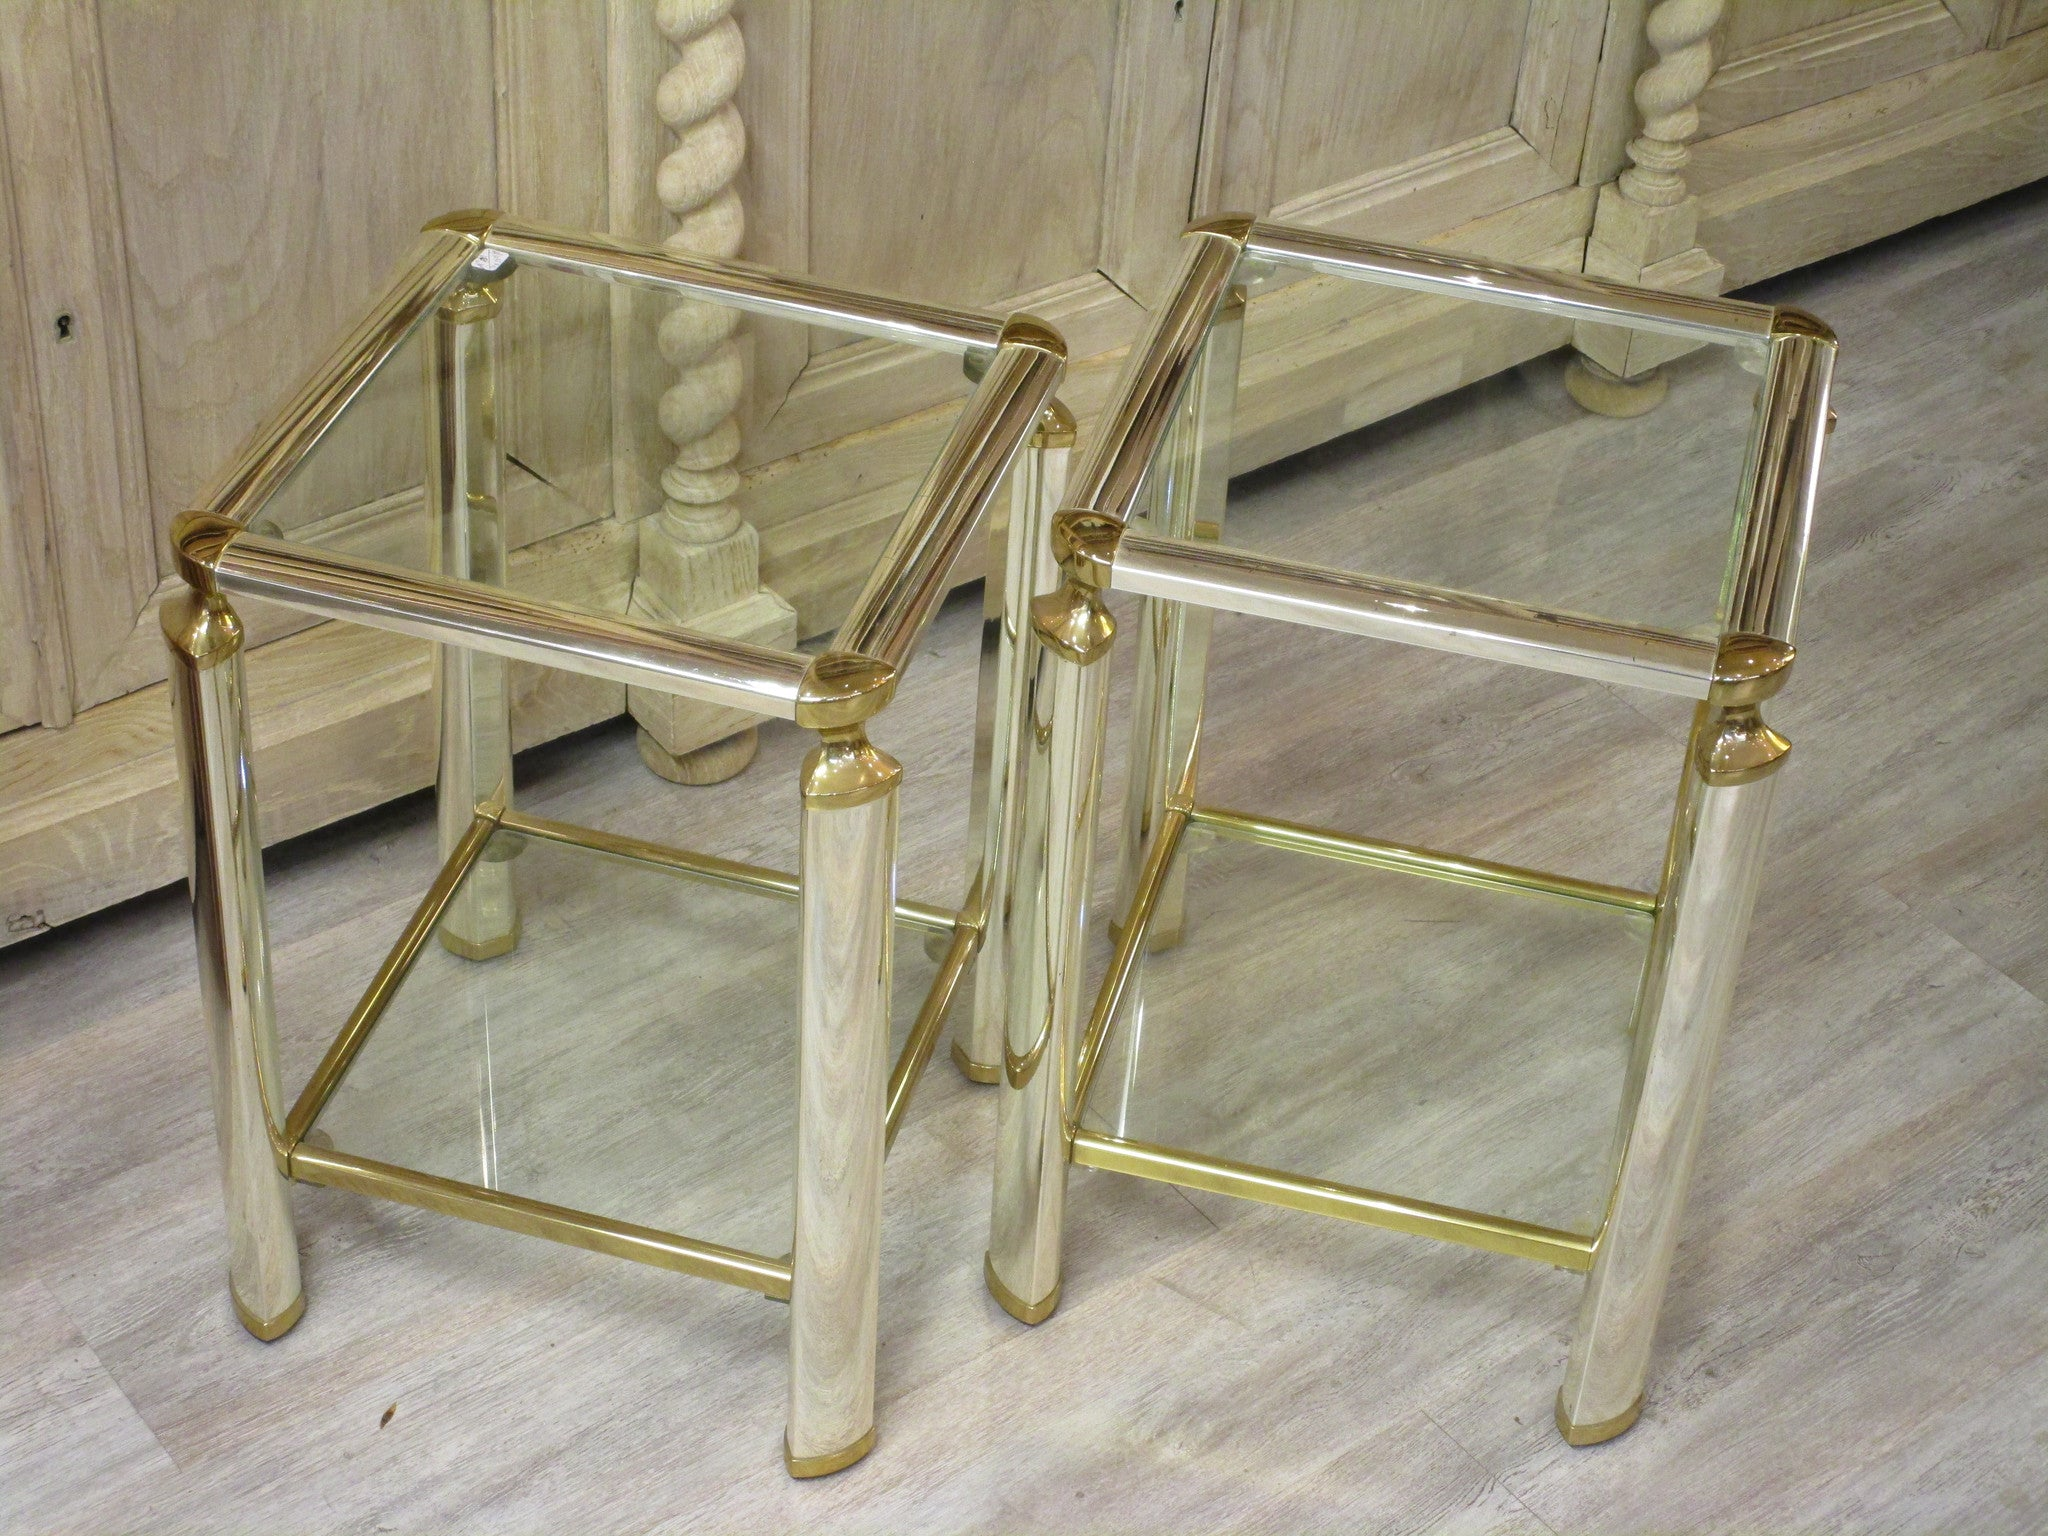 Pair of silver and gold French side tables glass shelves